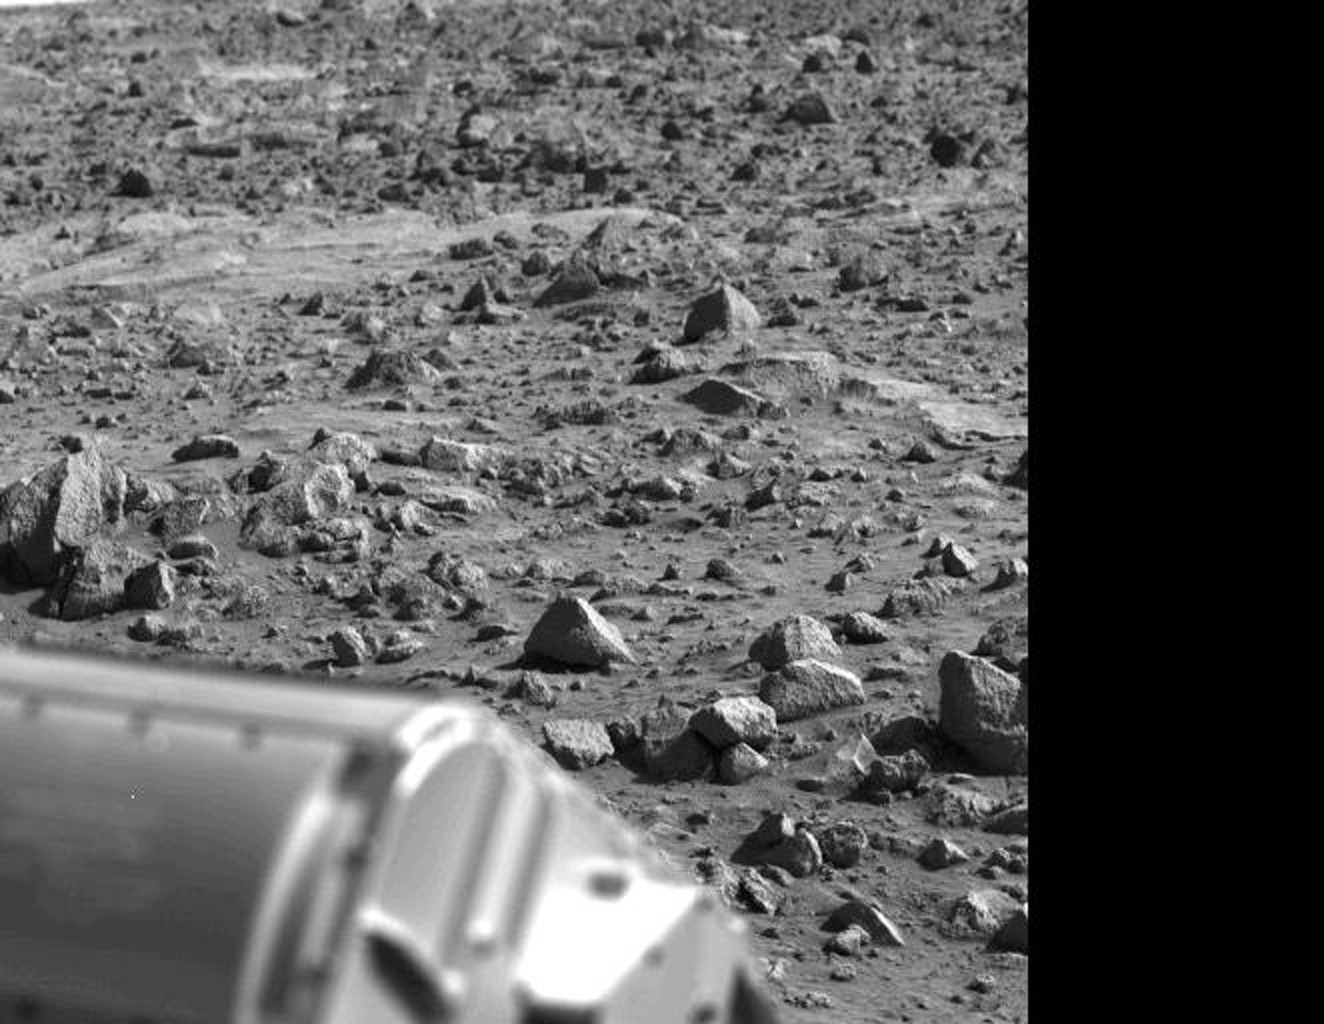 The letter 'B' or perhaps the figure '8' appears to have been etched into the Mars rock at the left edge of this picture taken by NASA's Viking 1 Lander. It is believed to be an illusion caused by weathering processes and the angle of the sun.